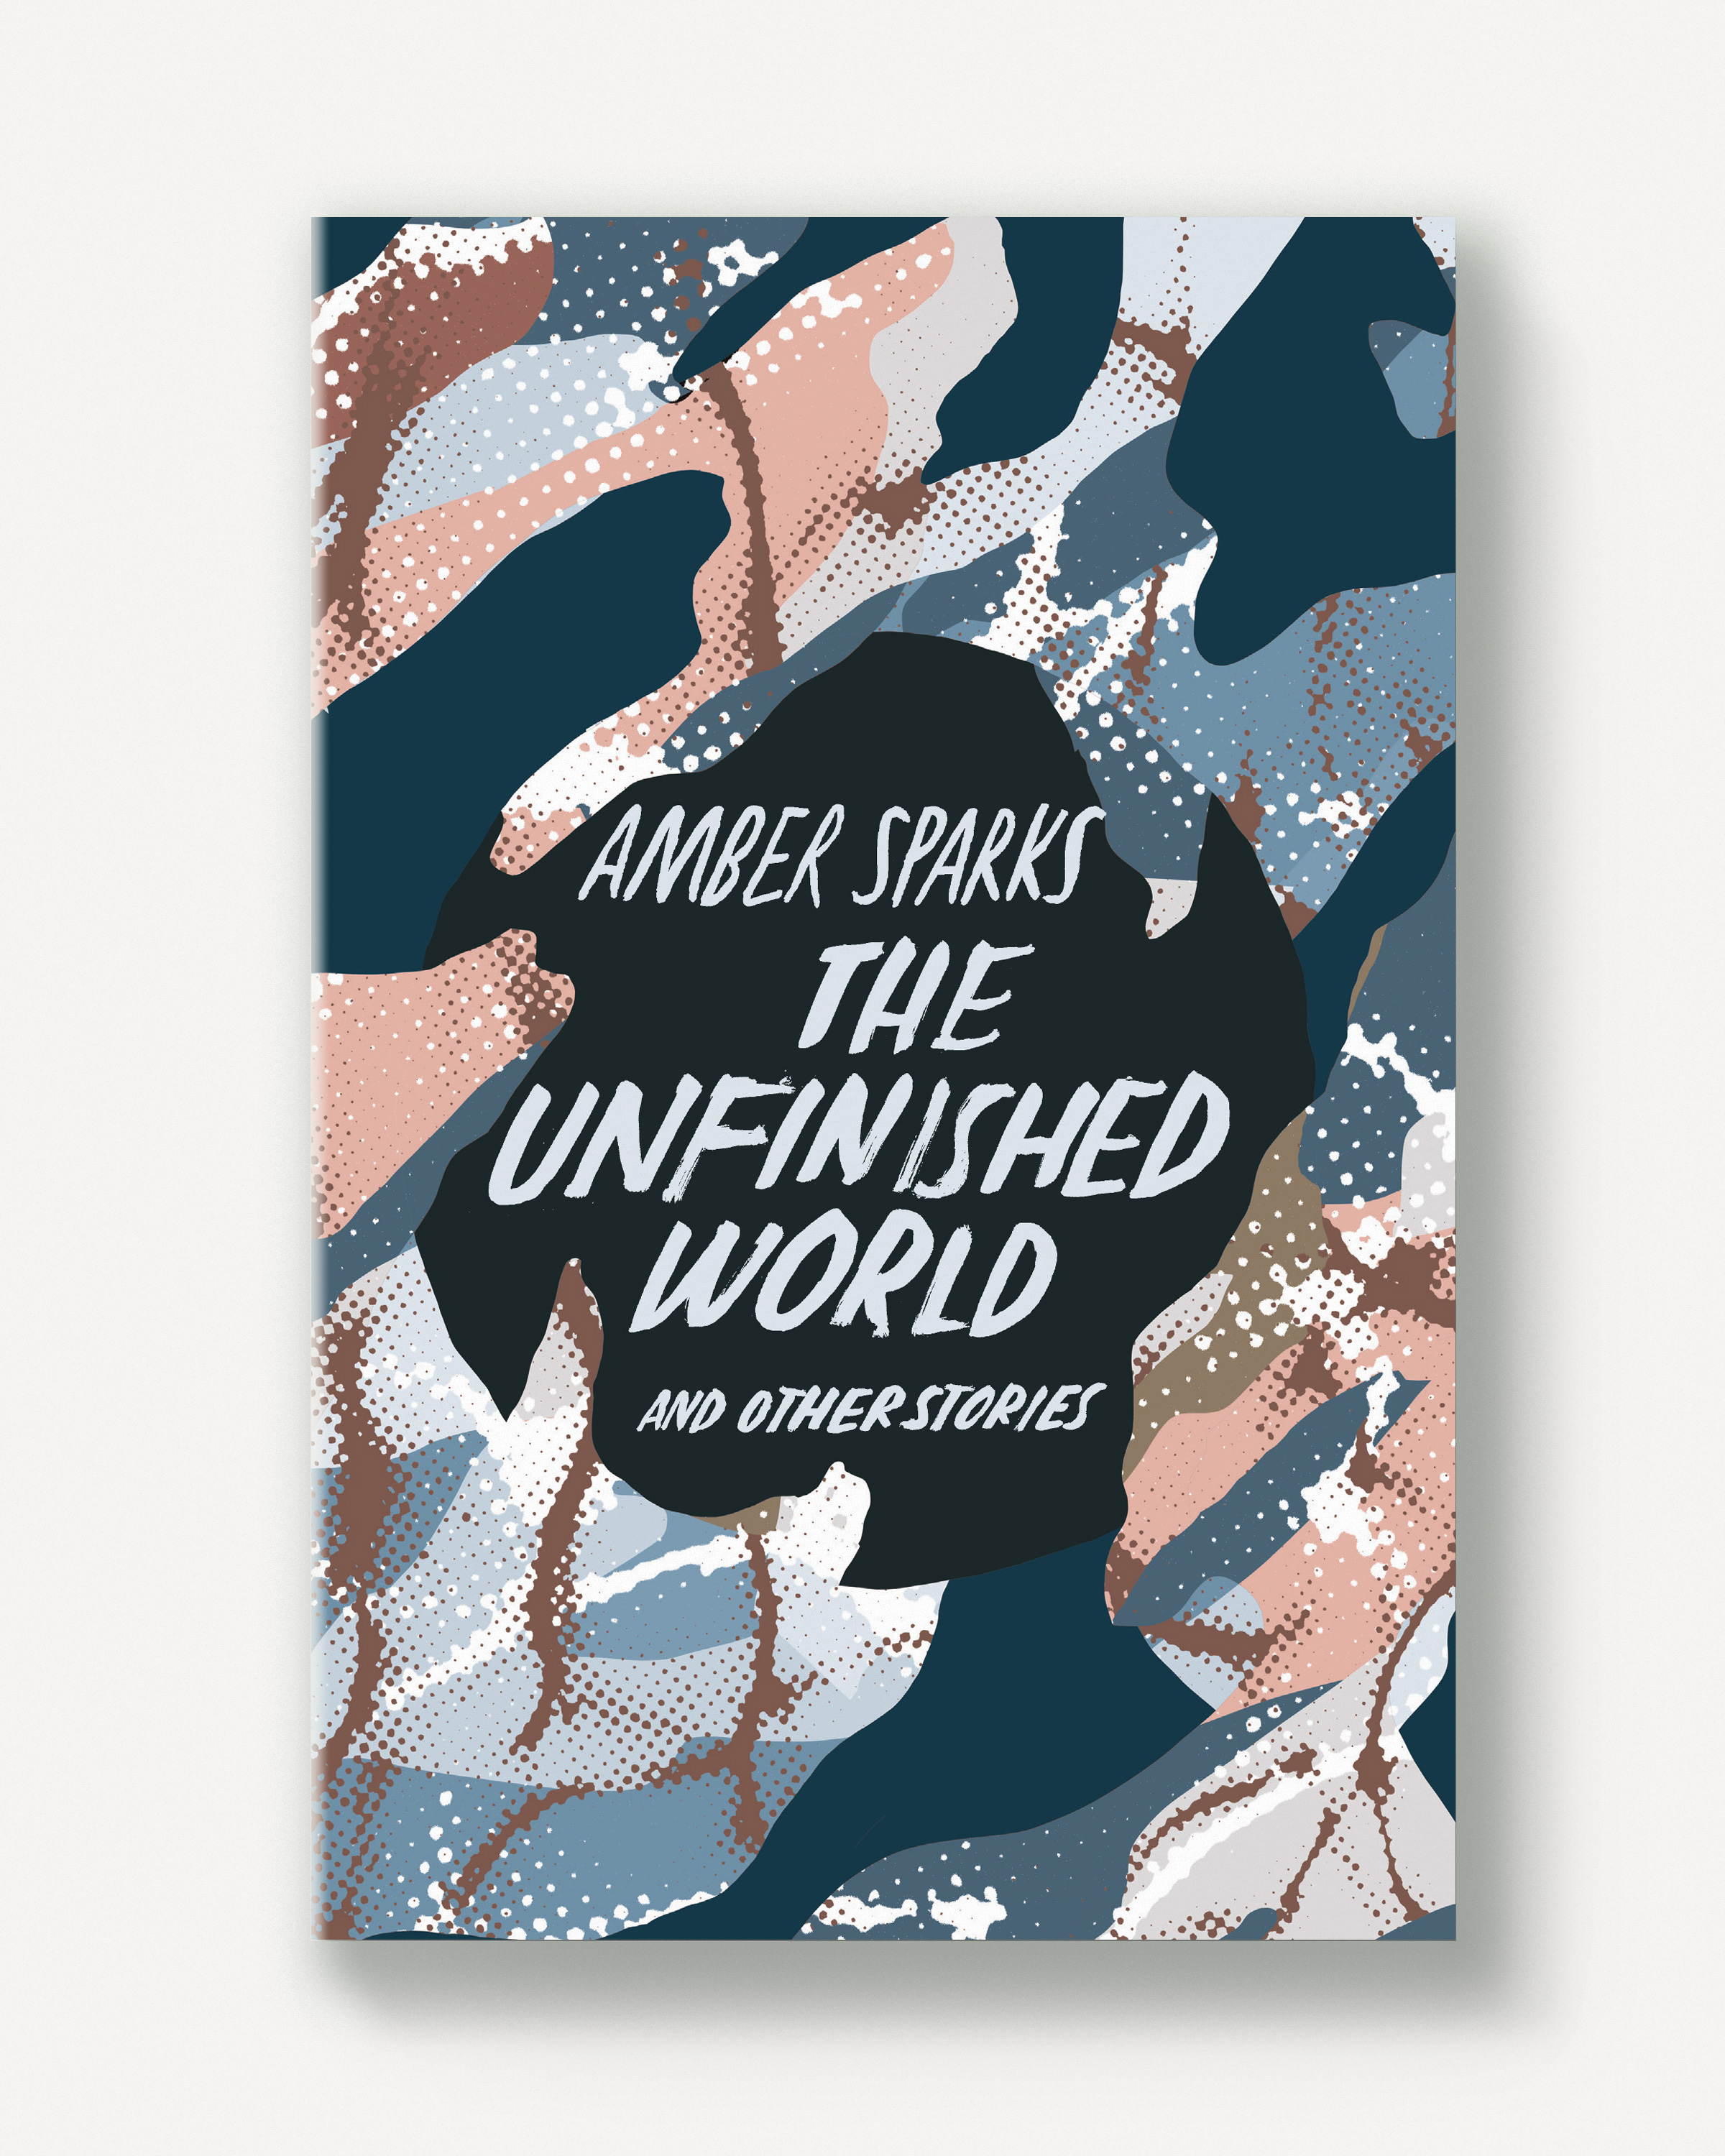 Books_UnfinishedWorld01.jpg